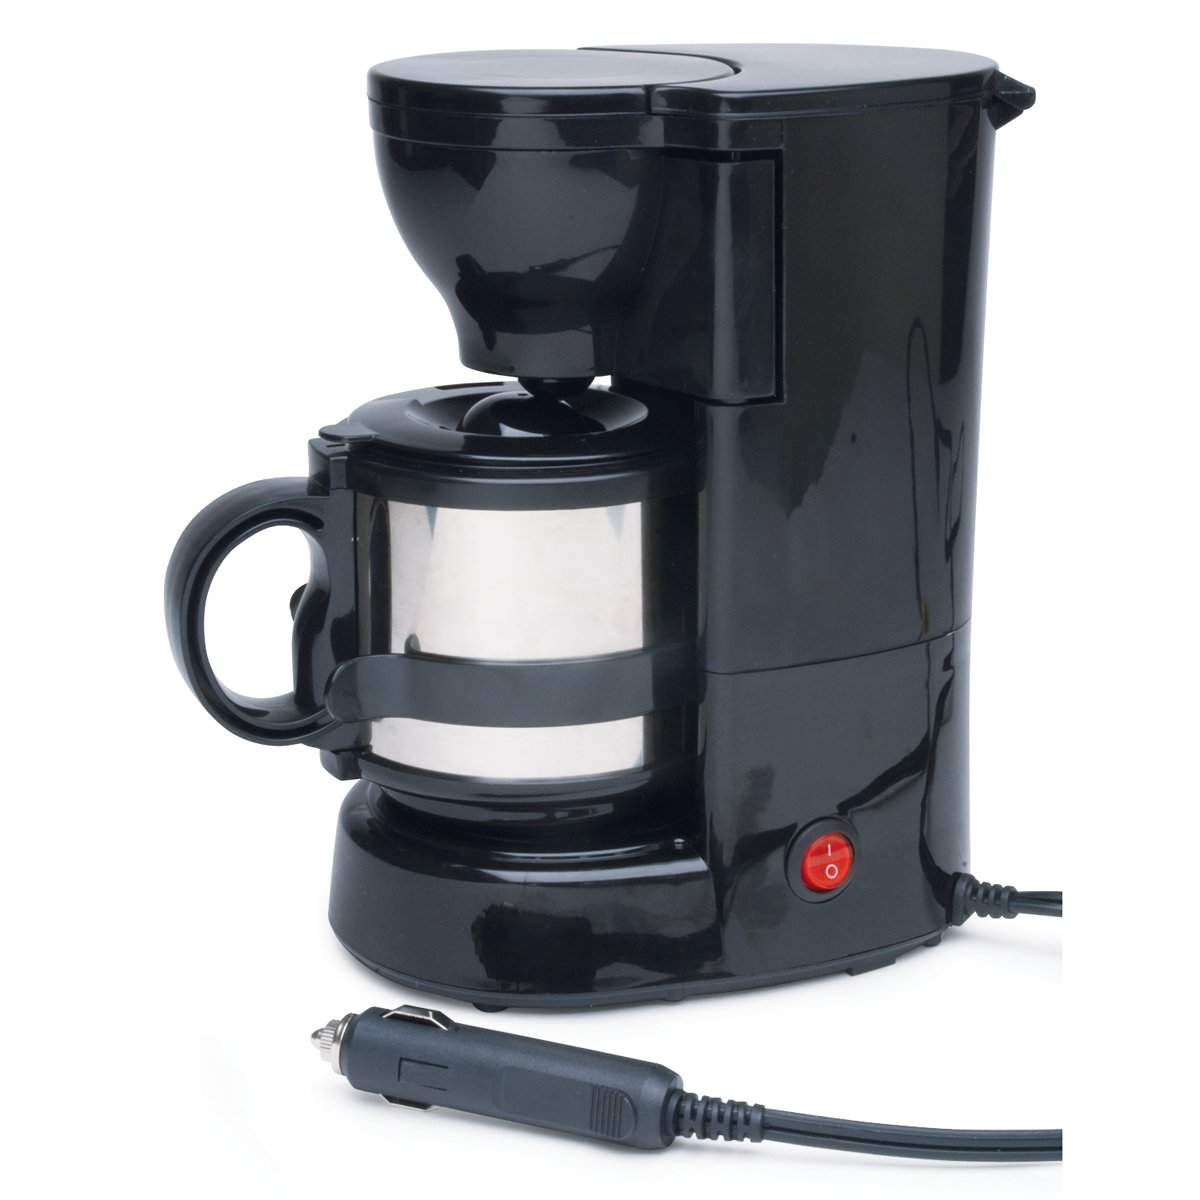 Roadpro RPSC-784 12-Volt Quick Cup Coffee Maker with 16 oz. Metal Carafe at Amazon.com